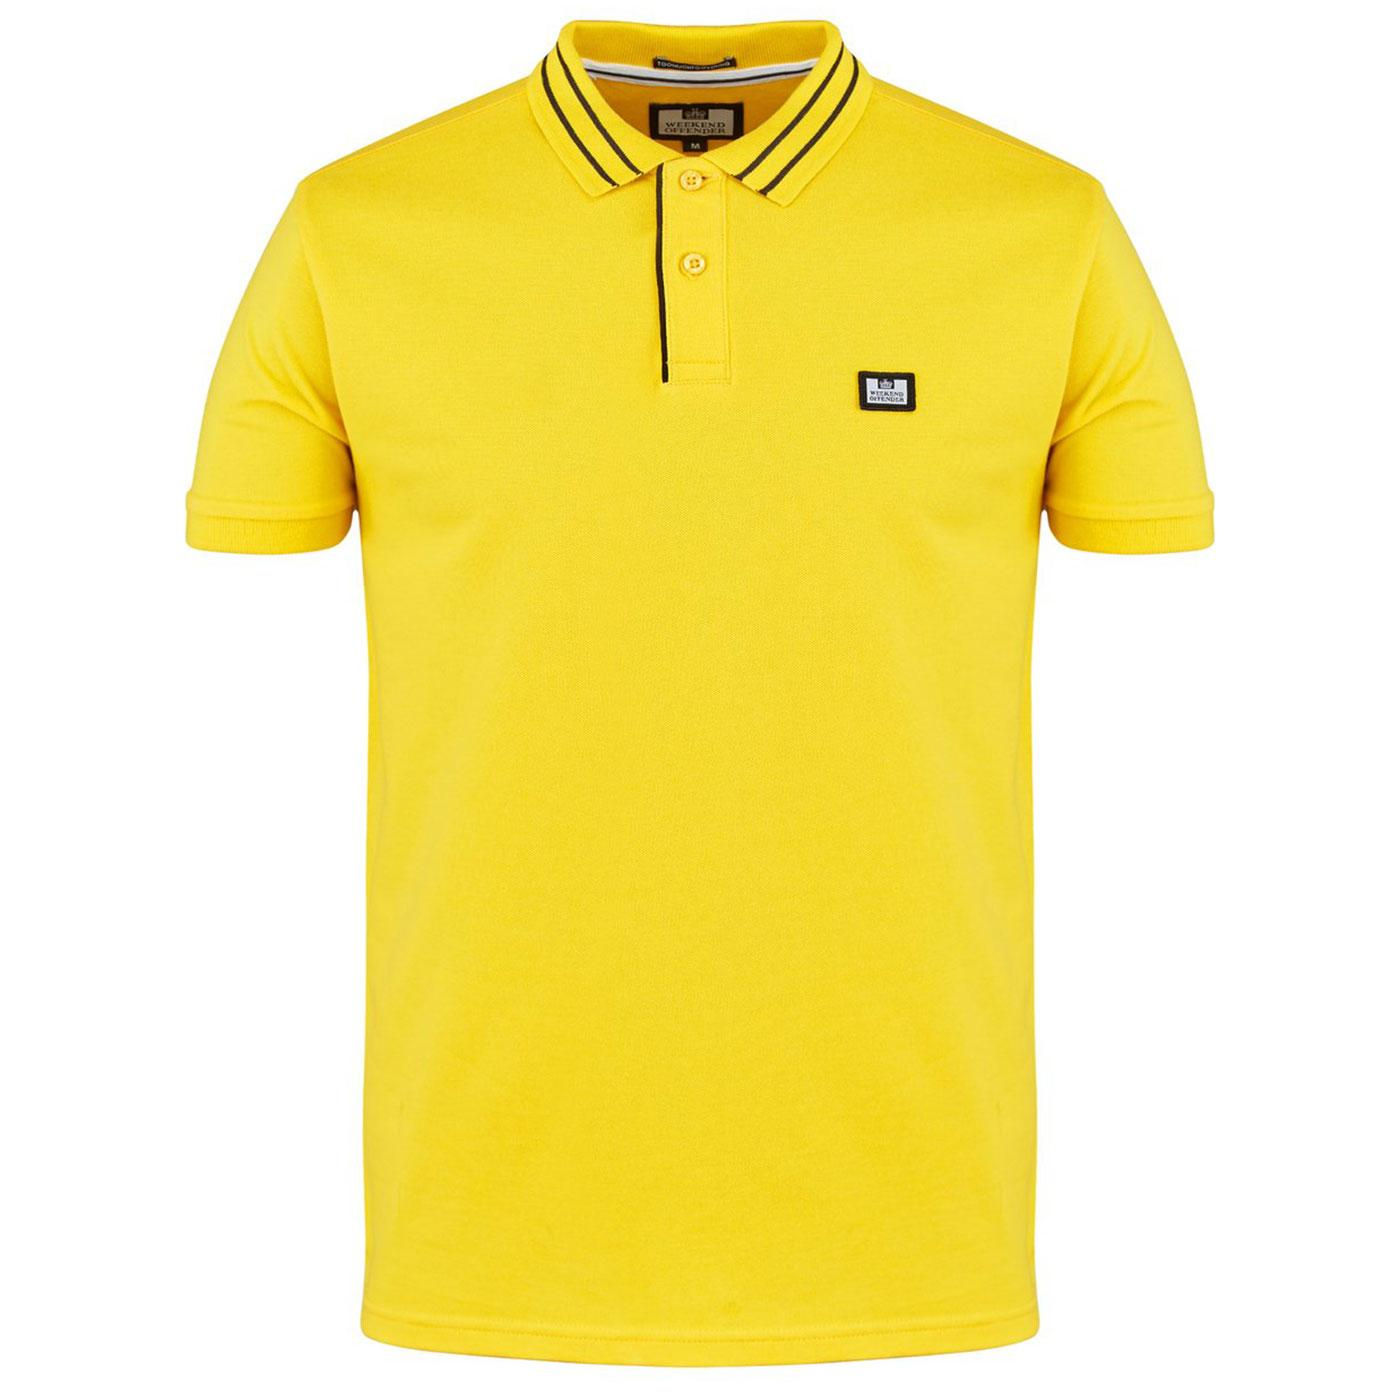 Frankie WEEKEND OFFENDER Mod Tipped Pique Polo S